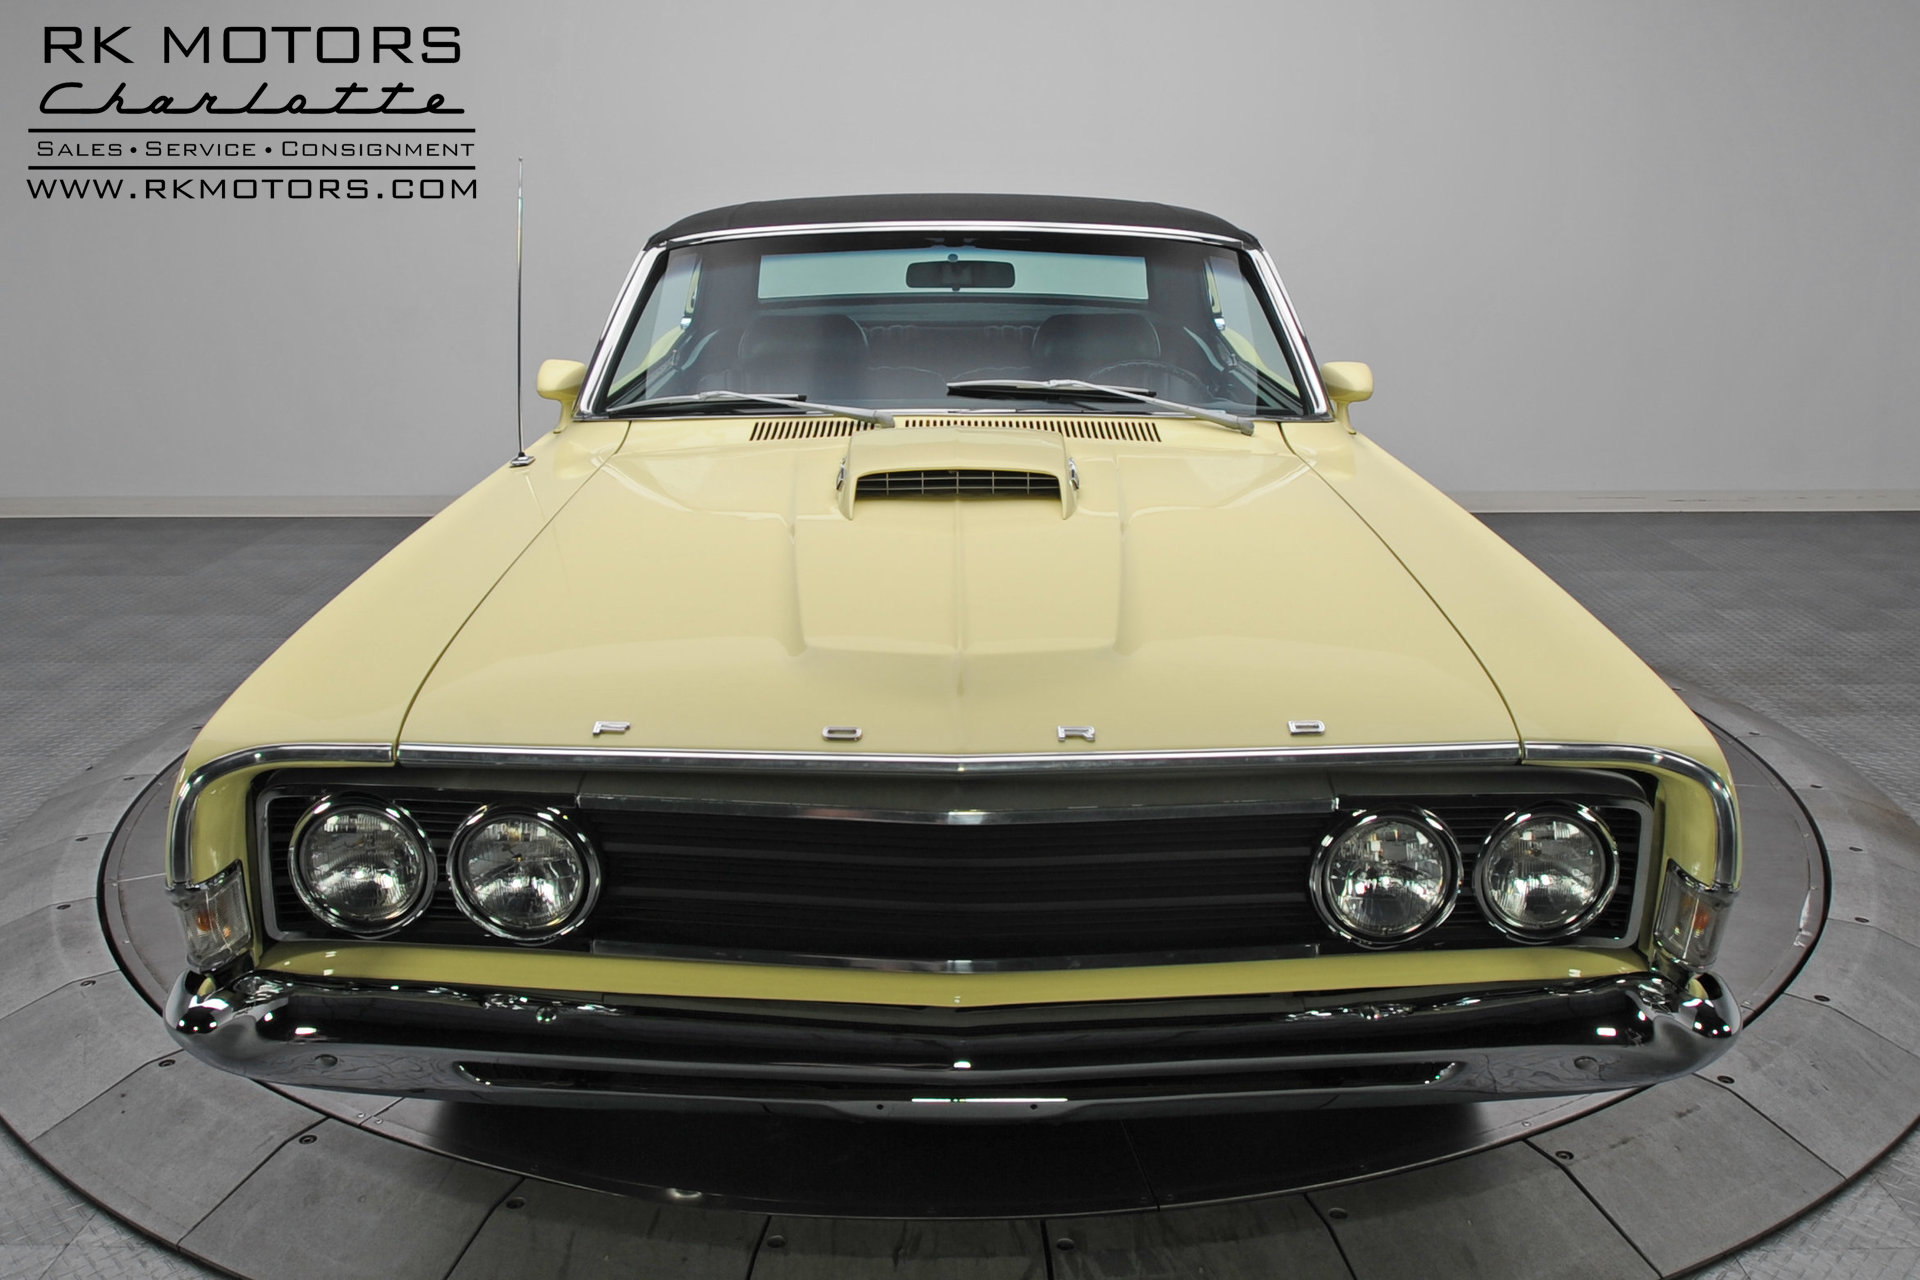 133121 1969 Ford Torino Rk Motors Classic And Performance Cars For Co Sale